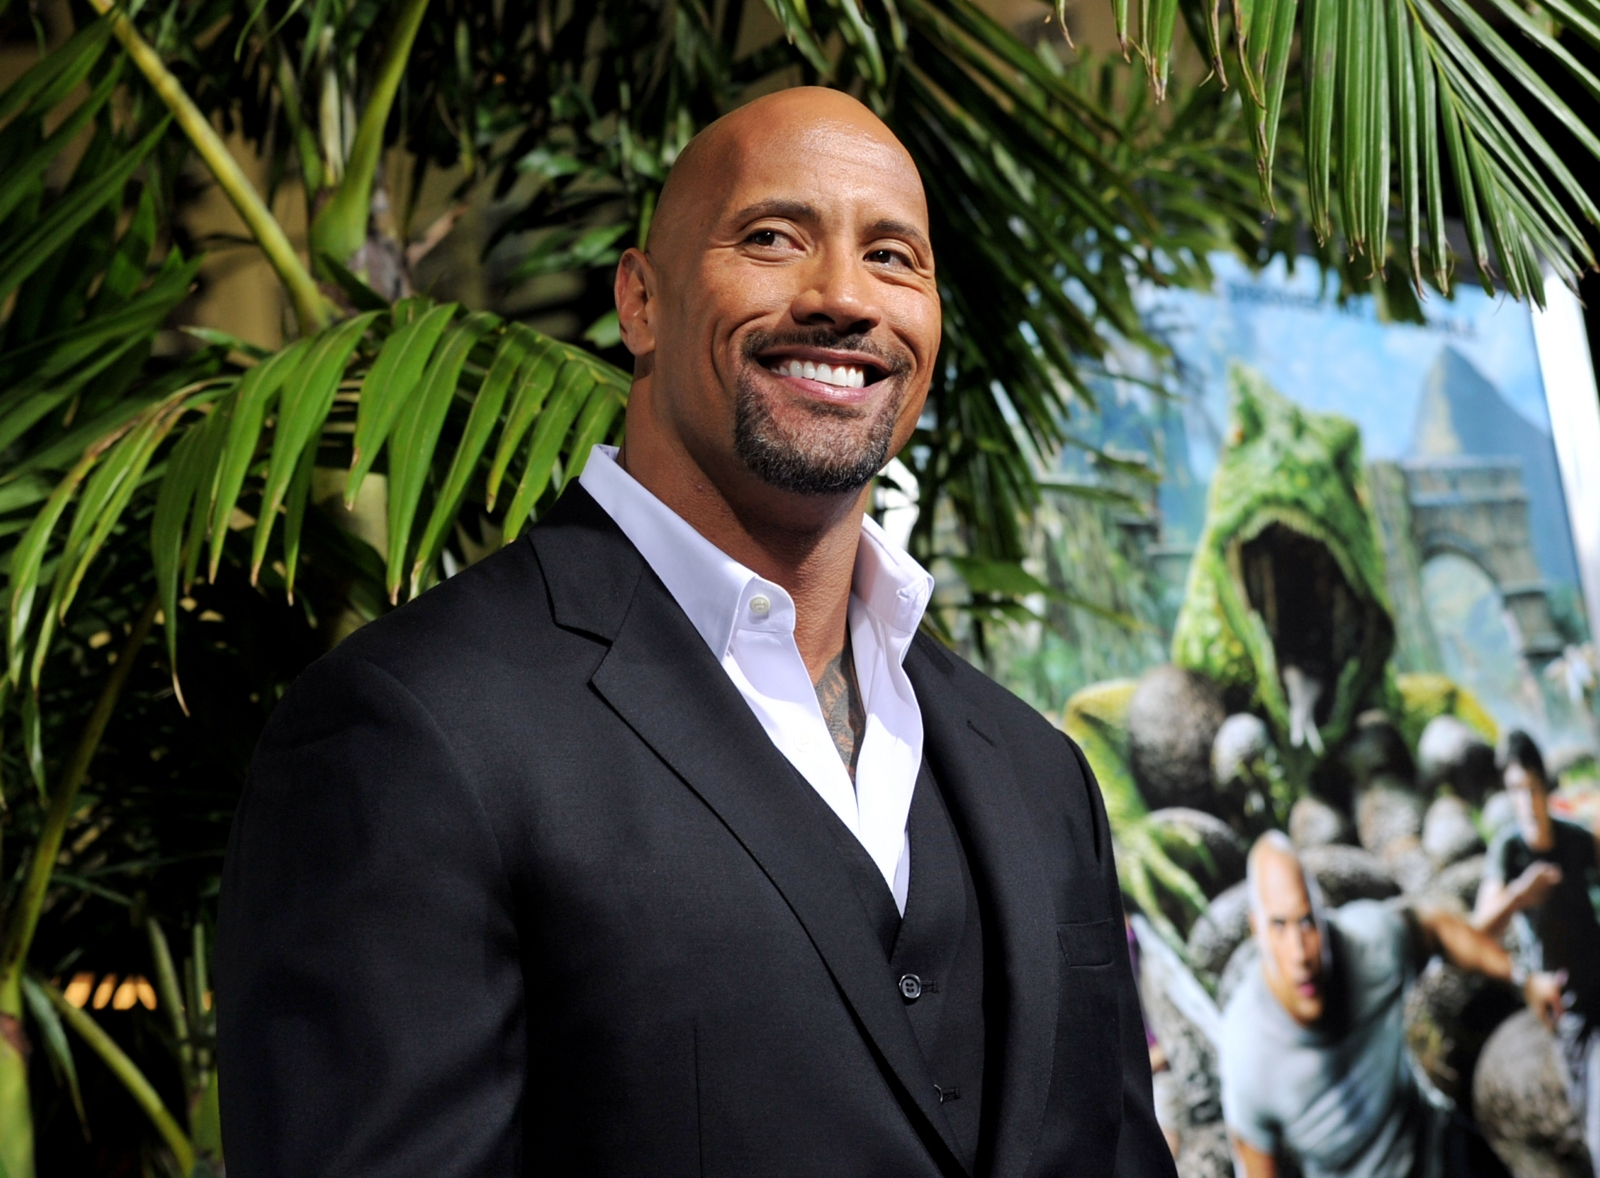 Dwayne 'The Rock' Johnson urges fans to 'settle and focus' on future following Donald Trump win